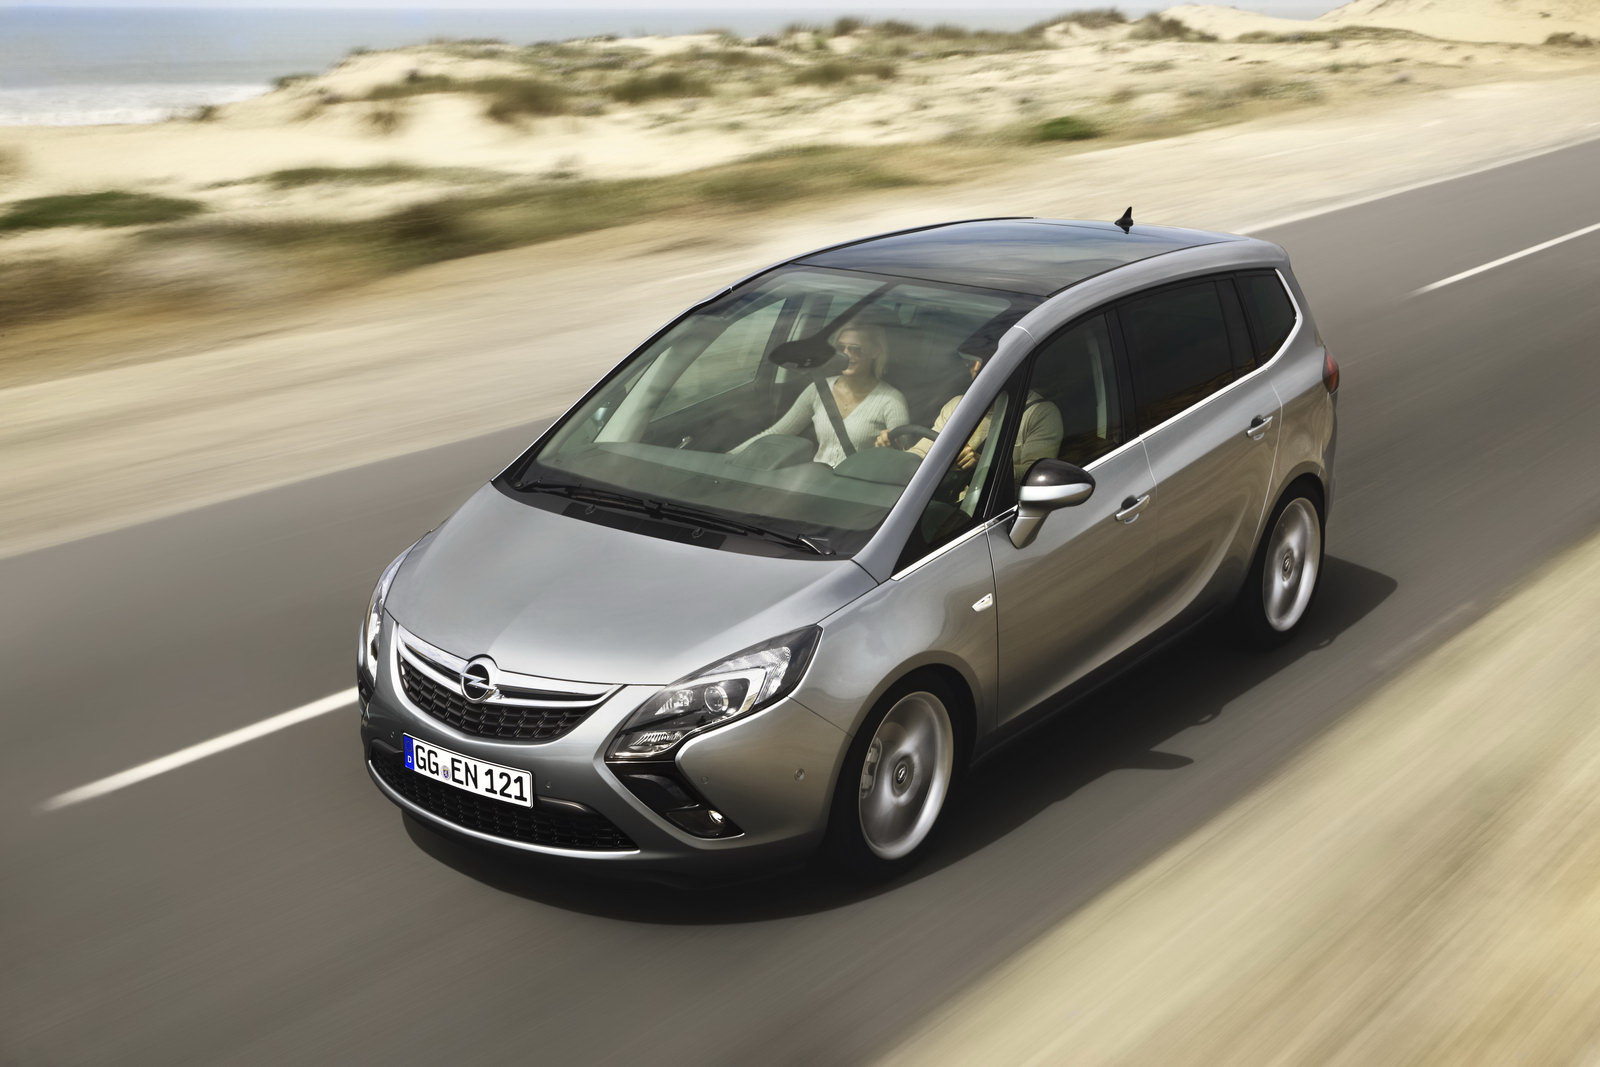 opel cheated on zafira diesel emissions tests says belgian tv channel. Black Bedroom Furniture Sets. Home Design Ideas